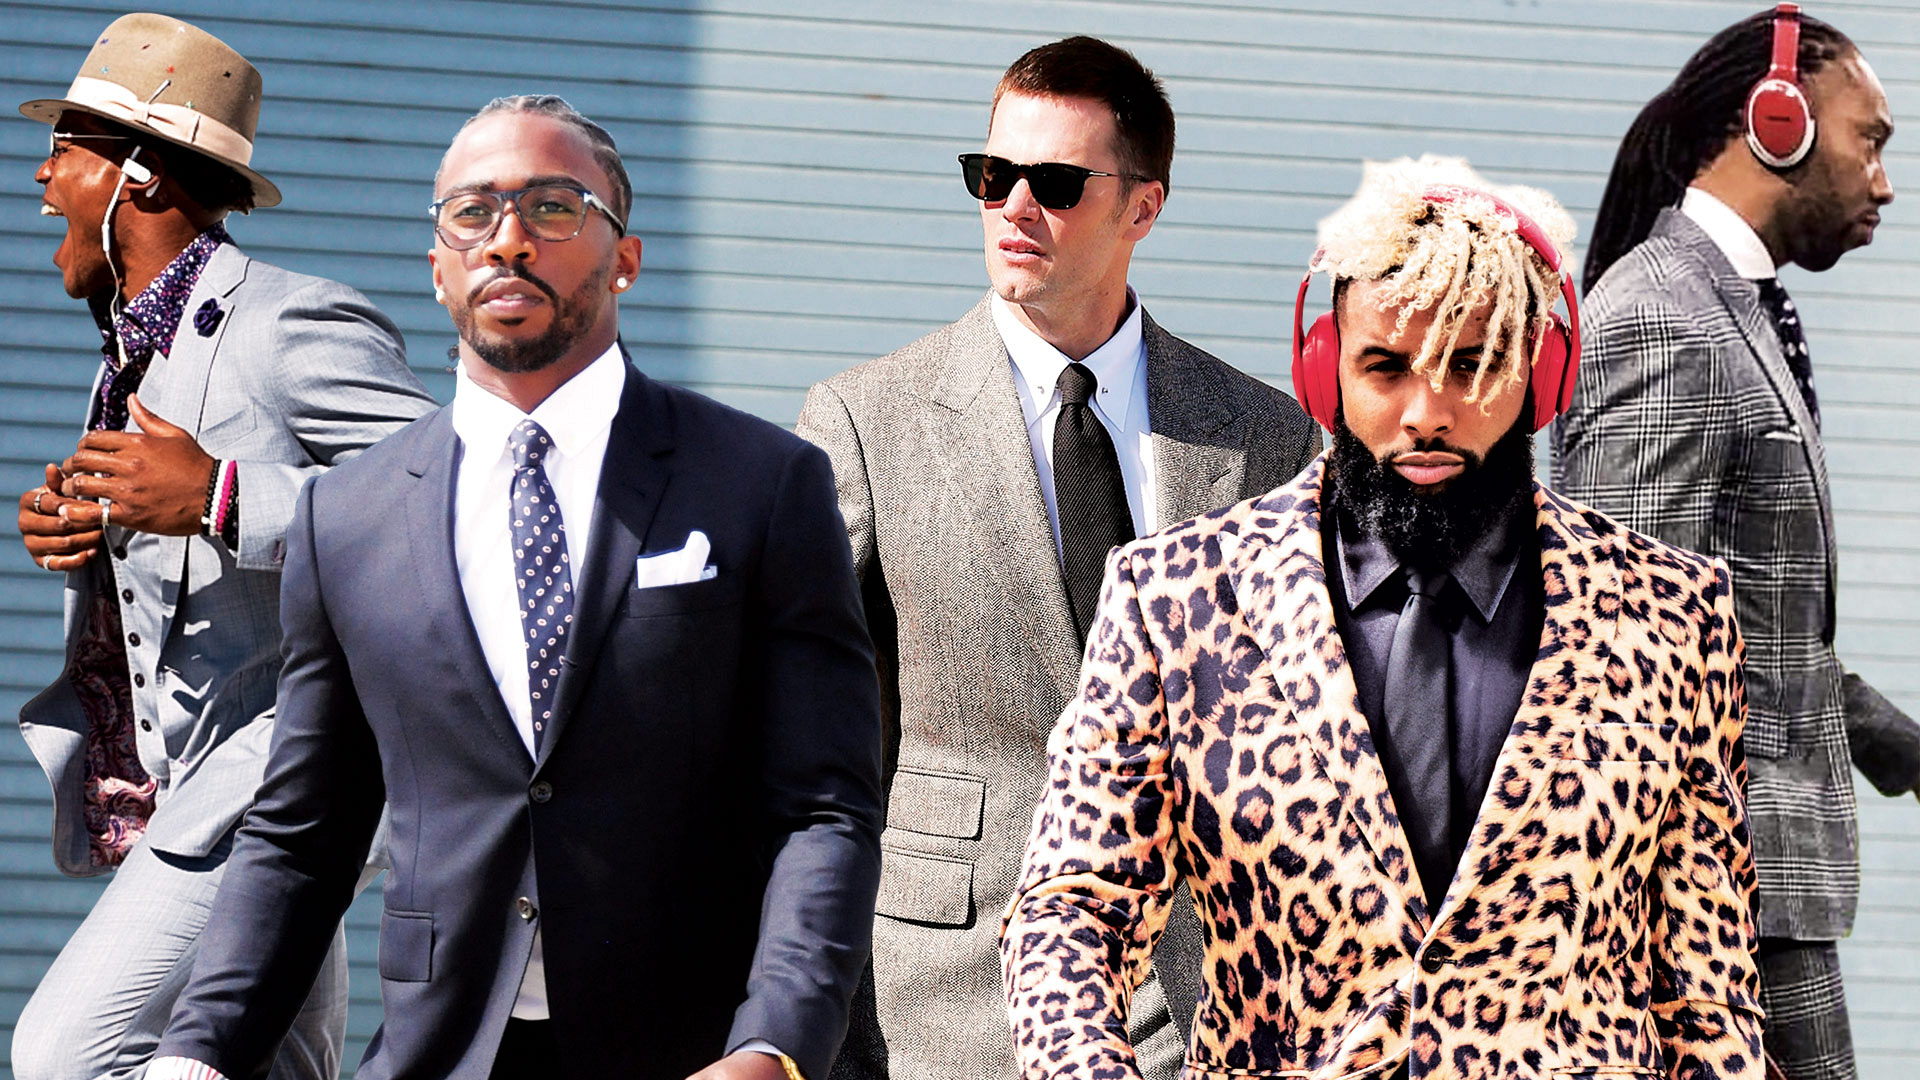 When football stars roll into town for a matchup, they dress for success